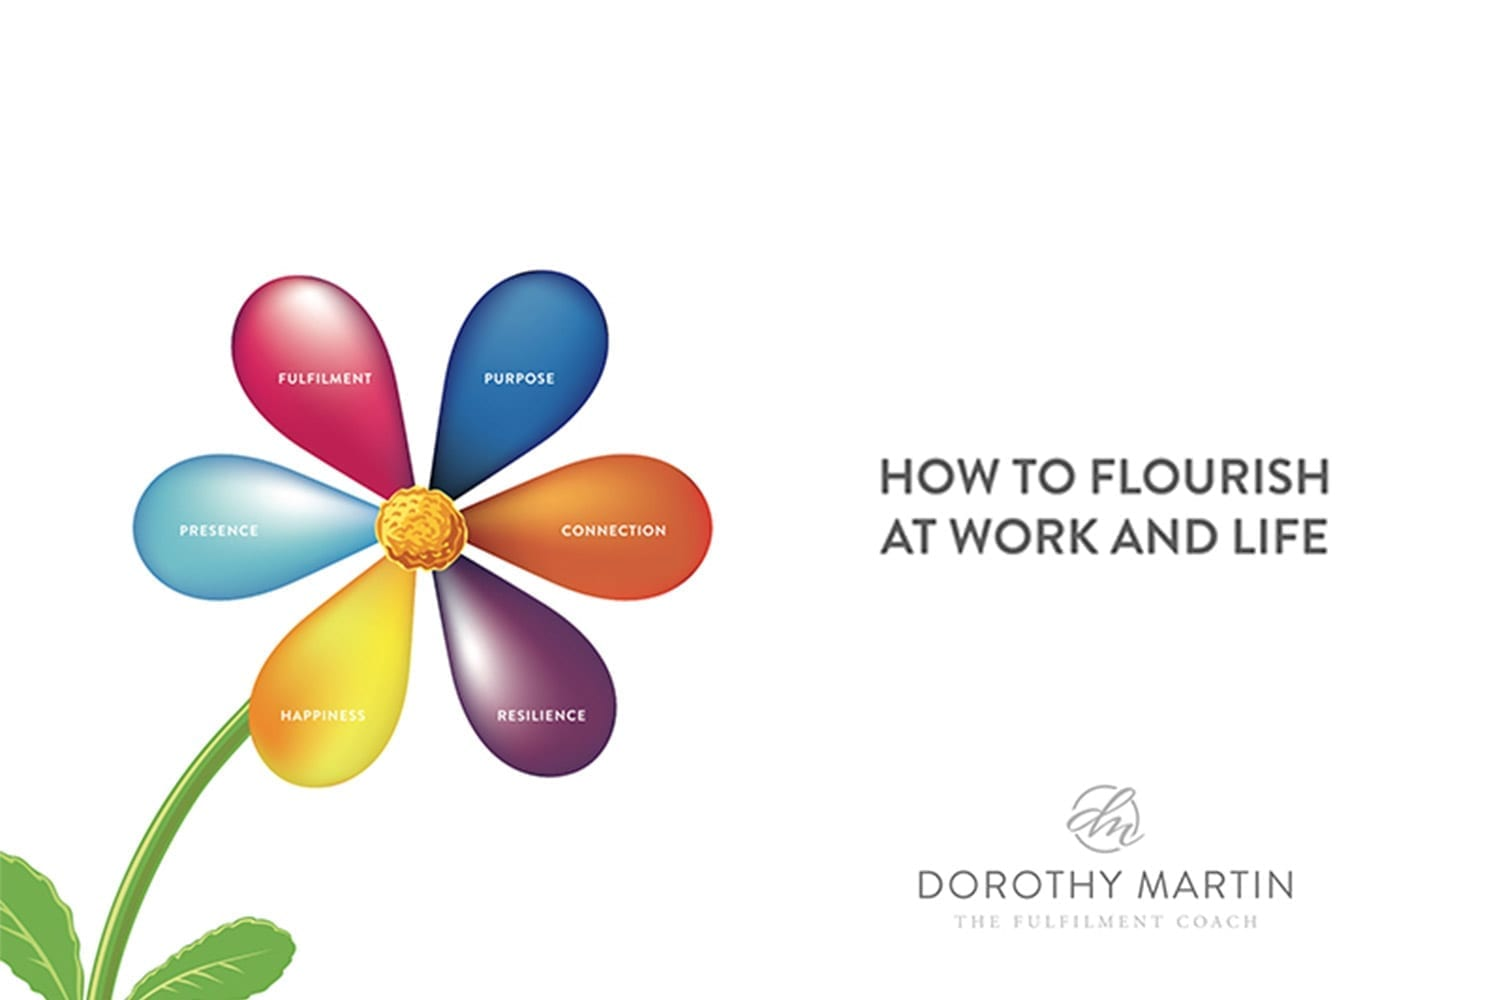 How to flourish at work and life?